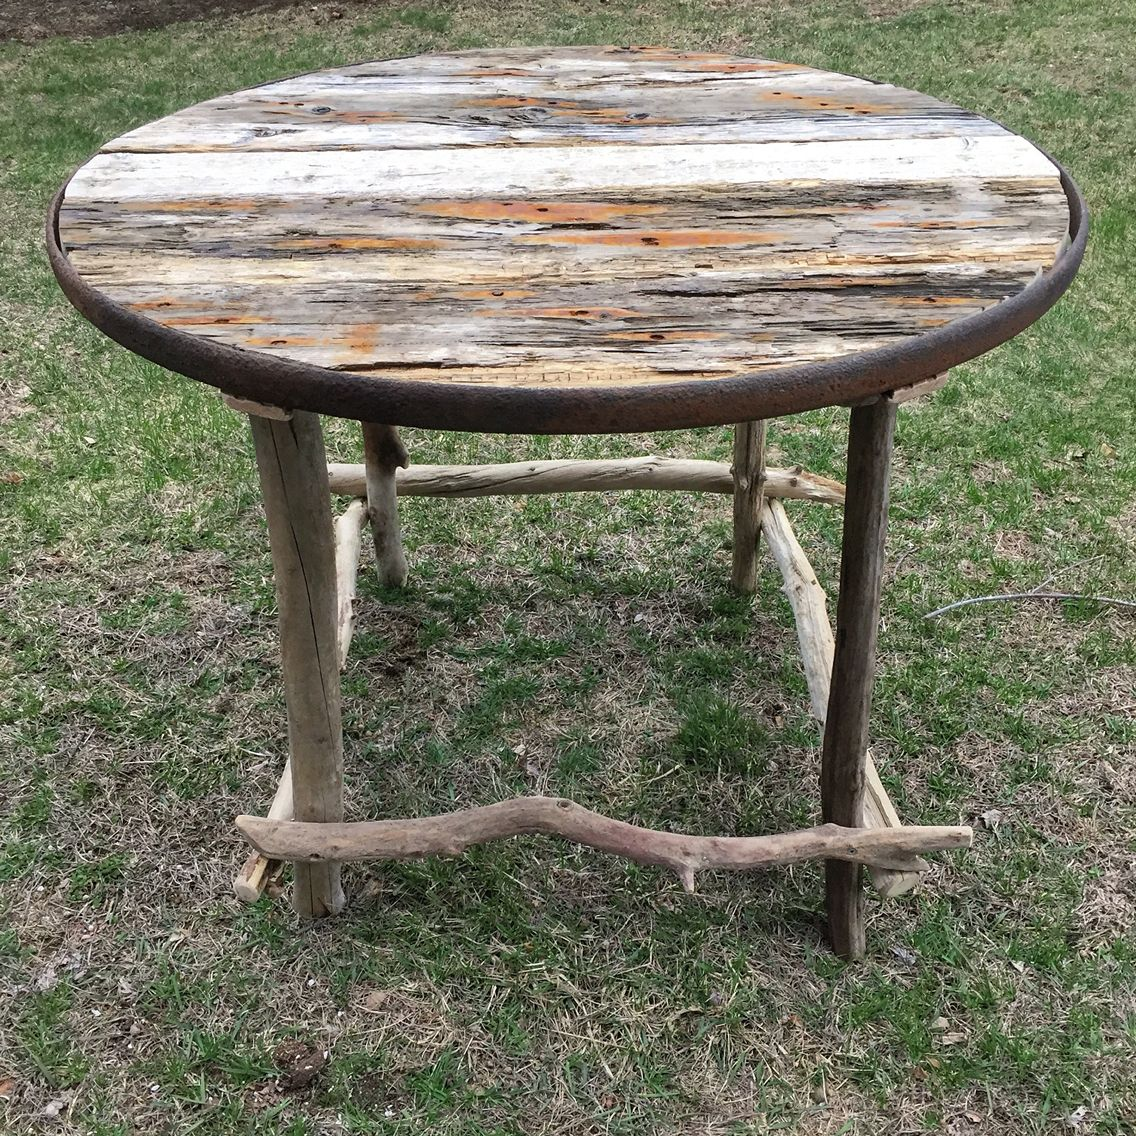 Vintage wagon wheel driftwood table. Available at Ivy Lane in Newburyport MA